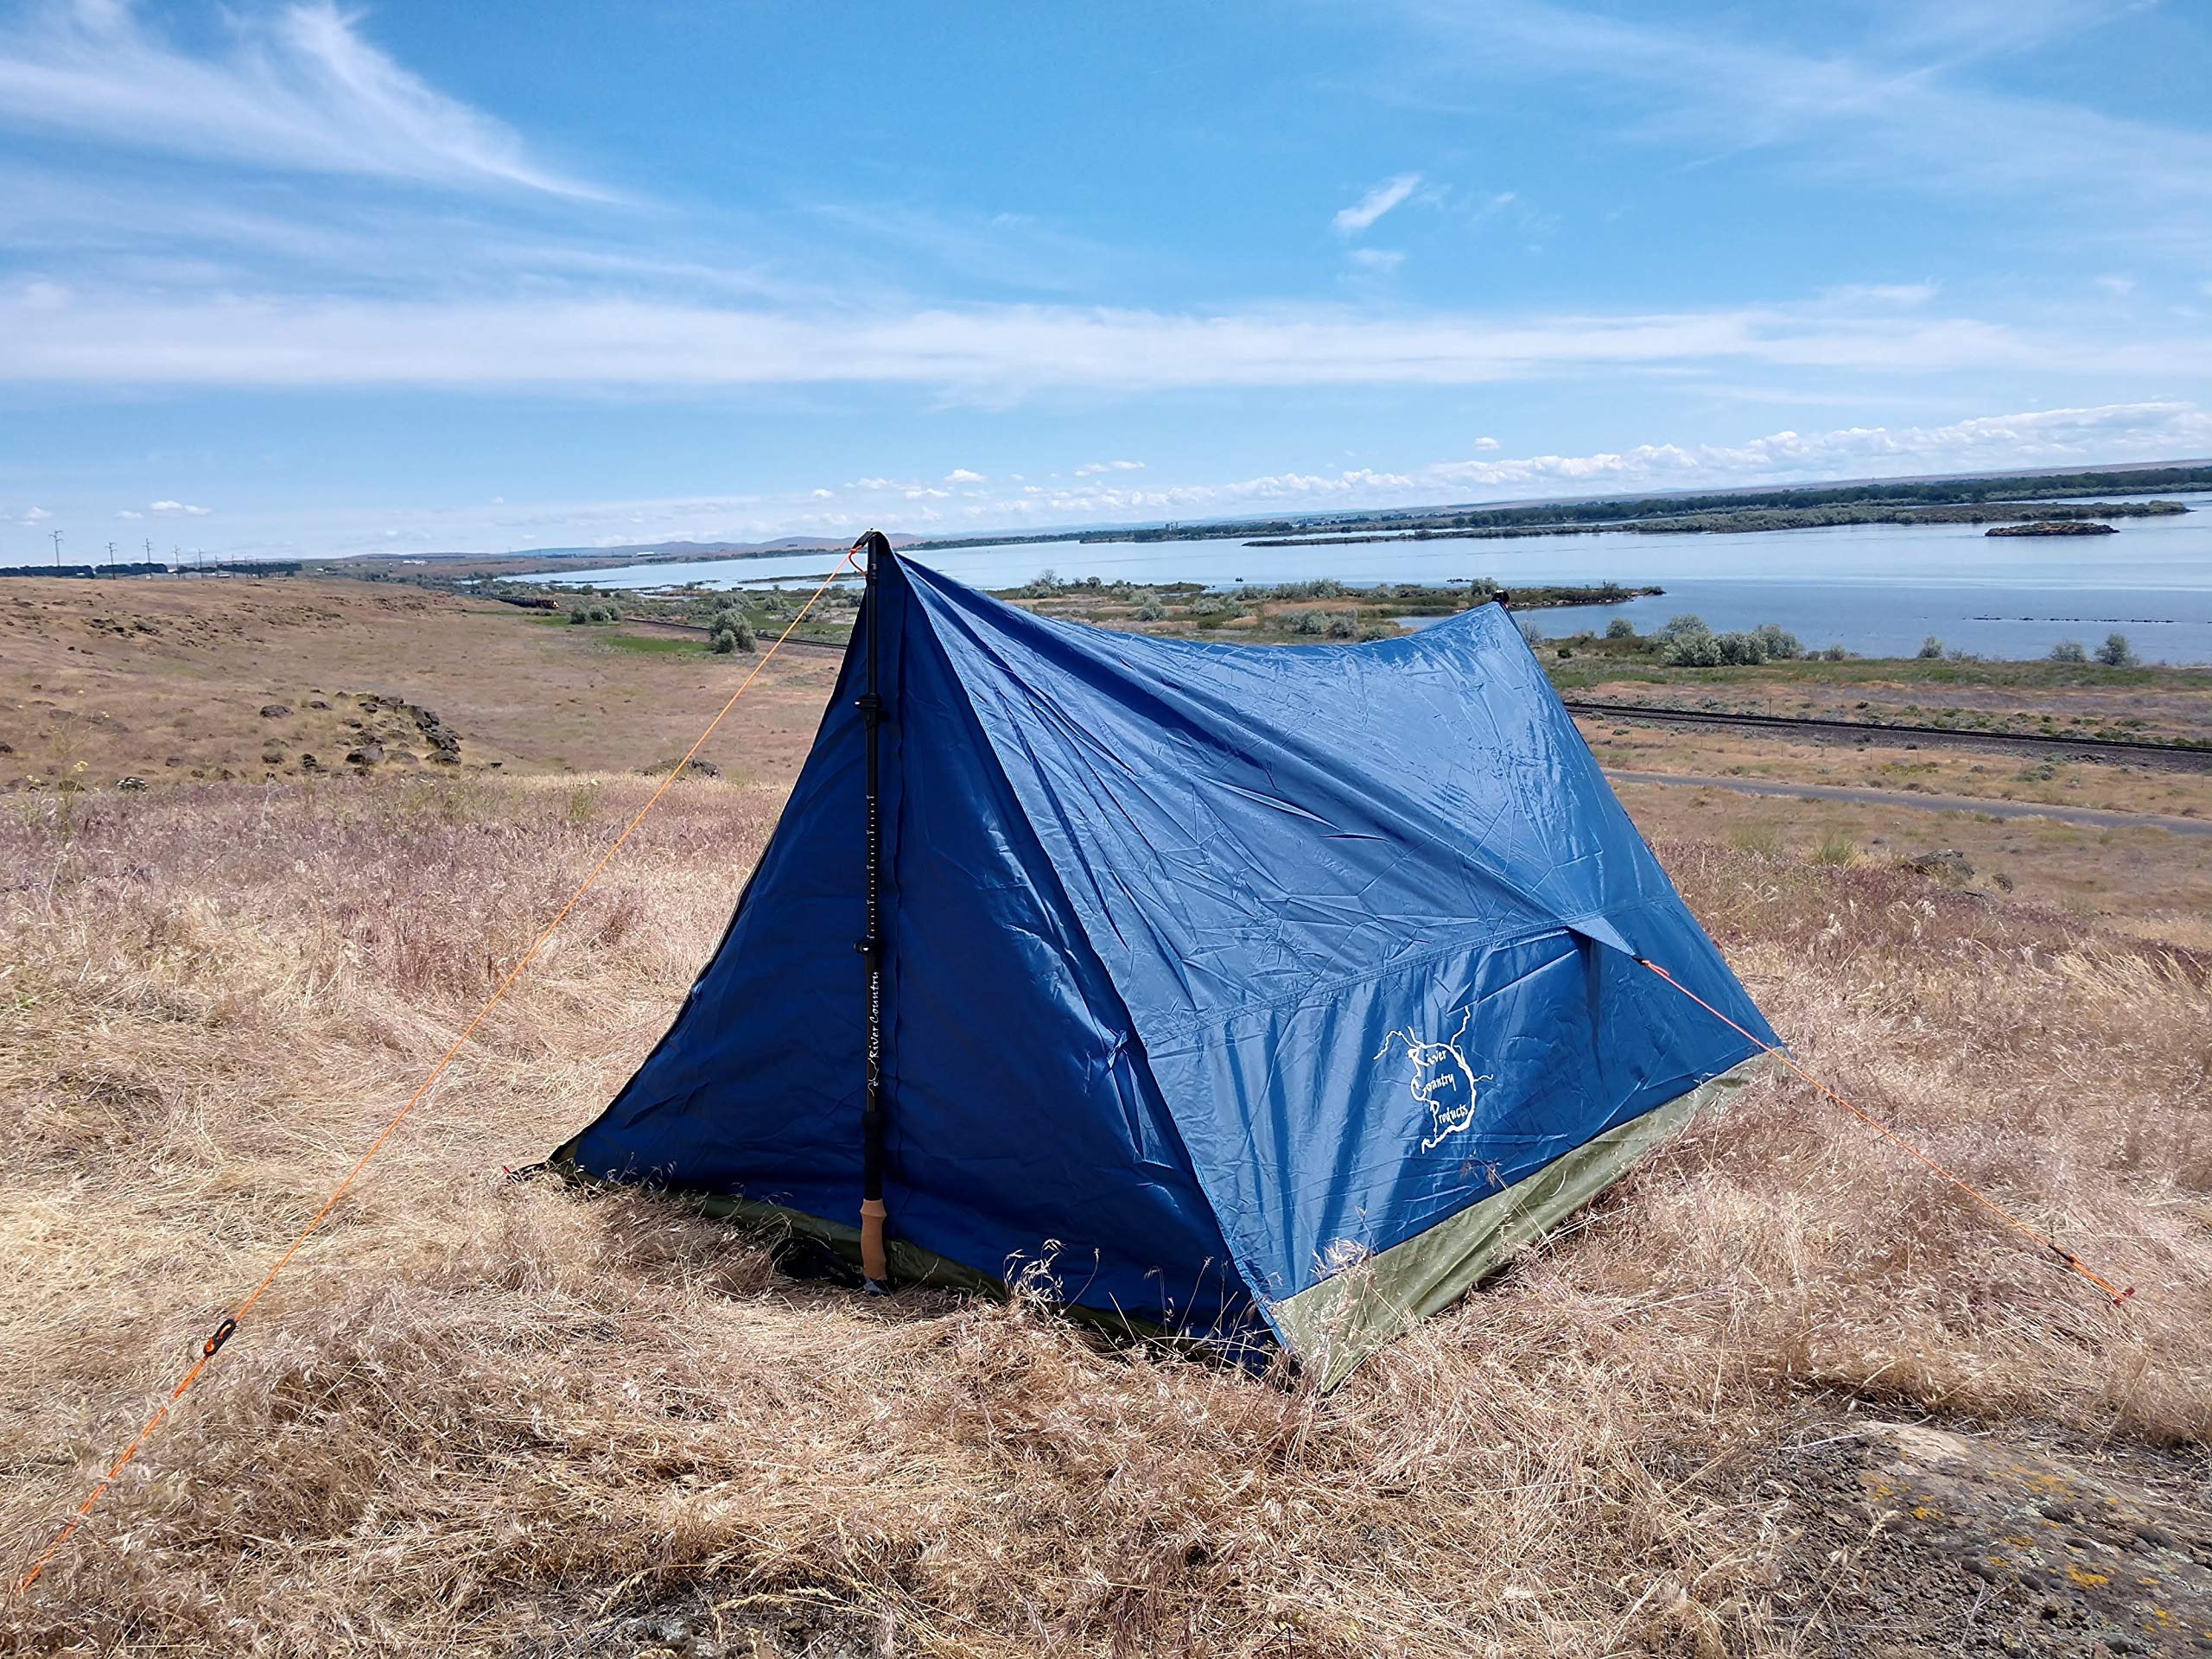 River Country Products Trekker Tent 2, Trekking Pole Tent, Ultralight Backpacking Tent - Blue by River Country Products